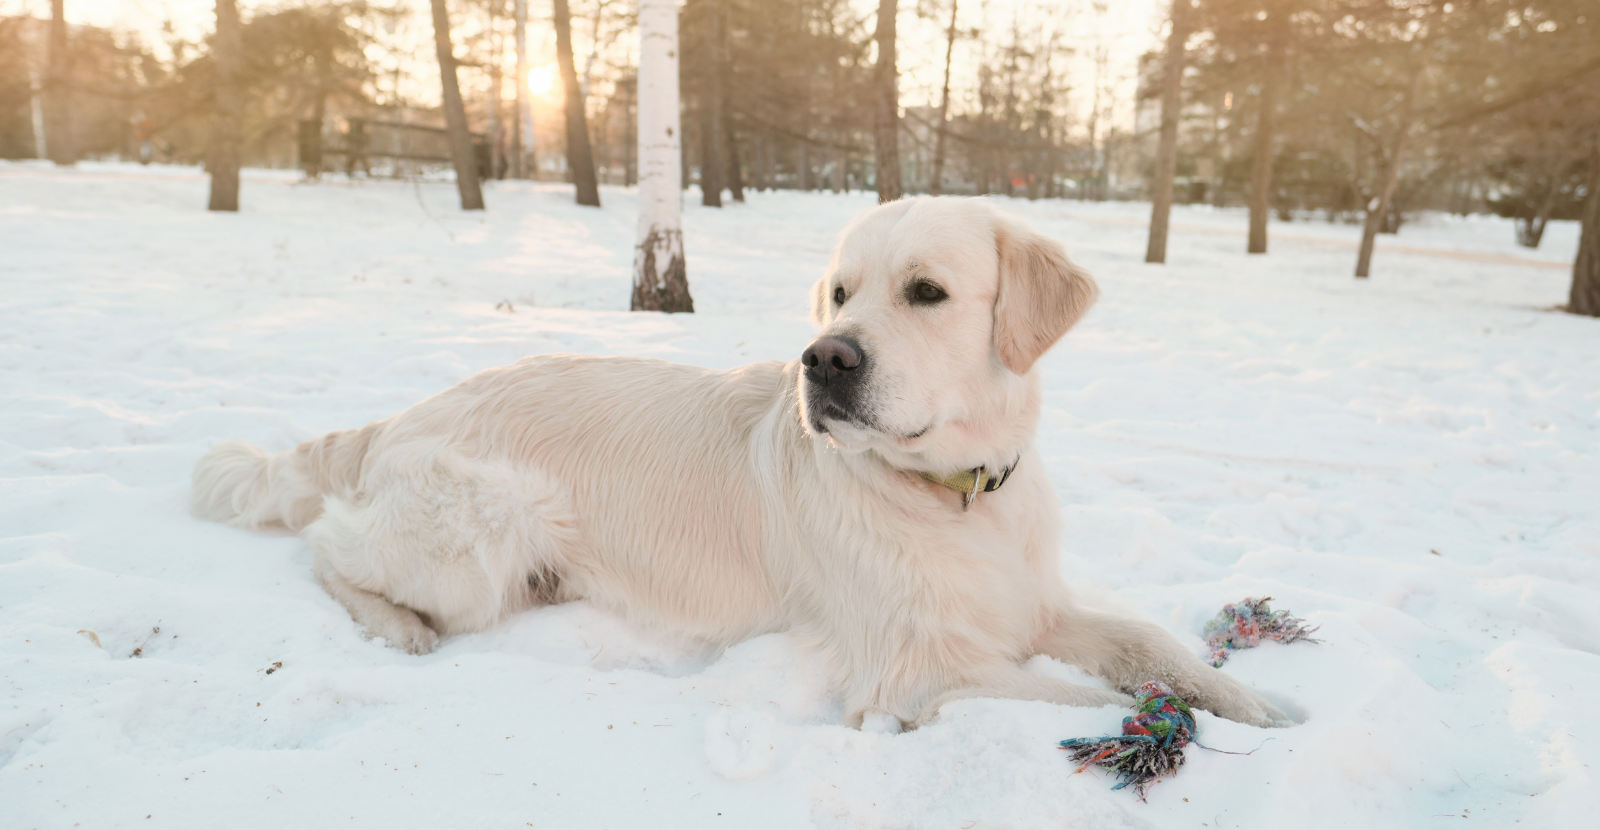 Brrr: 4 Cold Weather Tips for Dogs [Infographic]